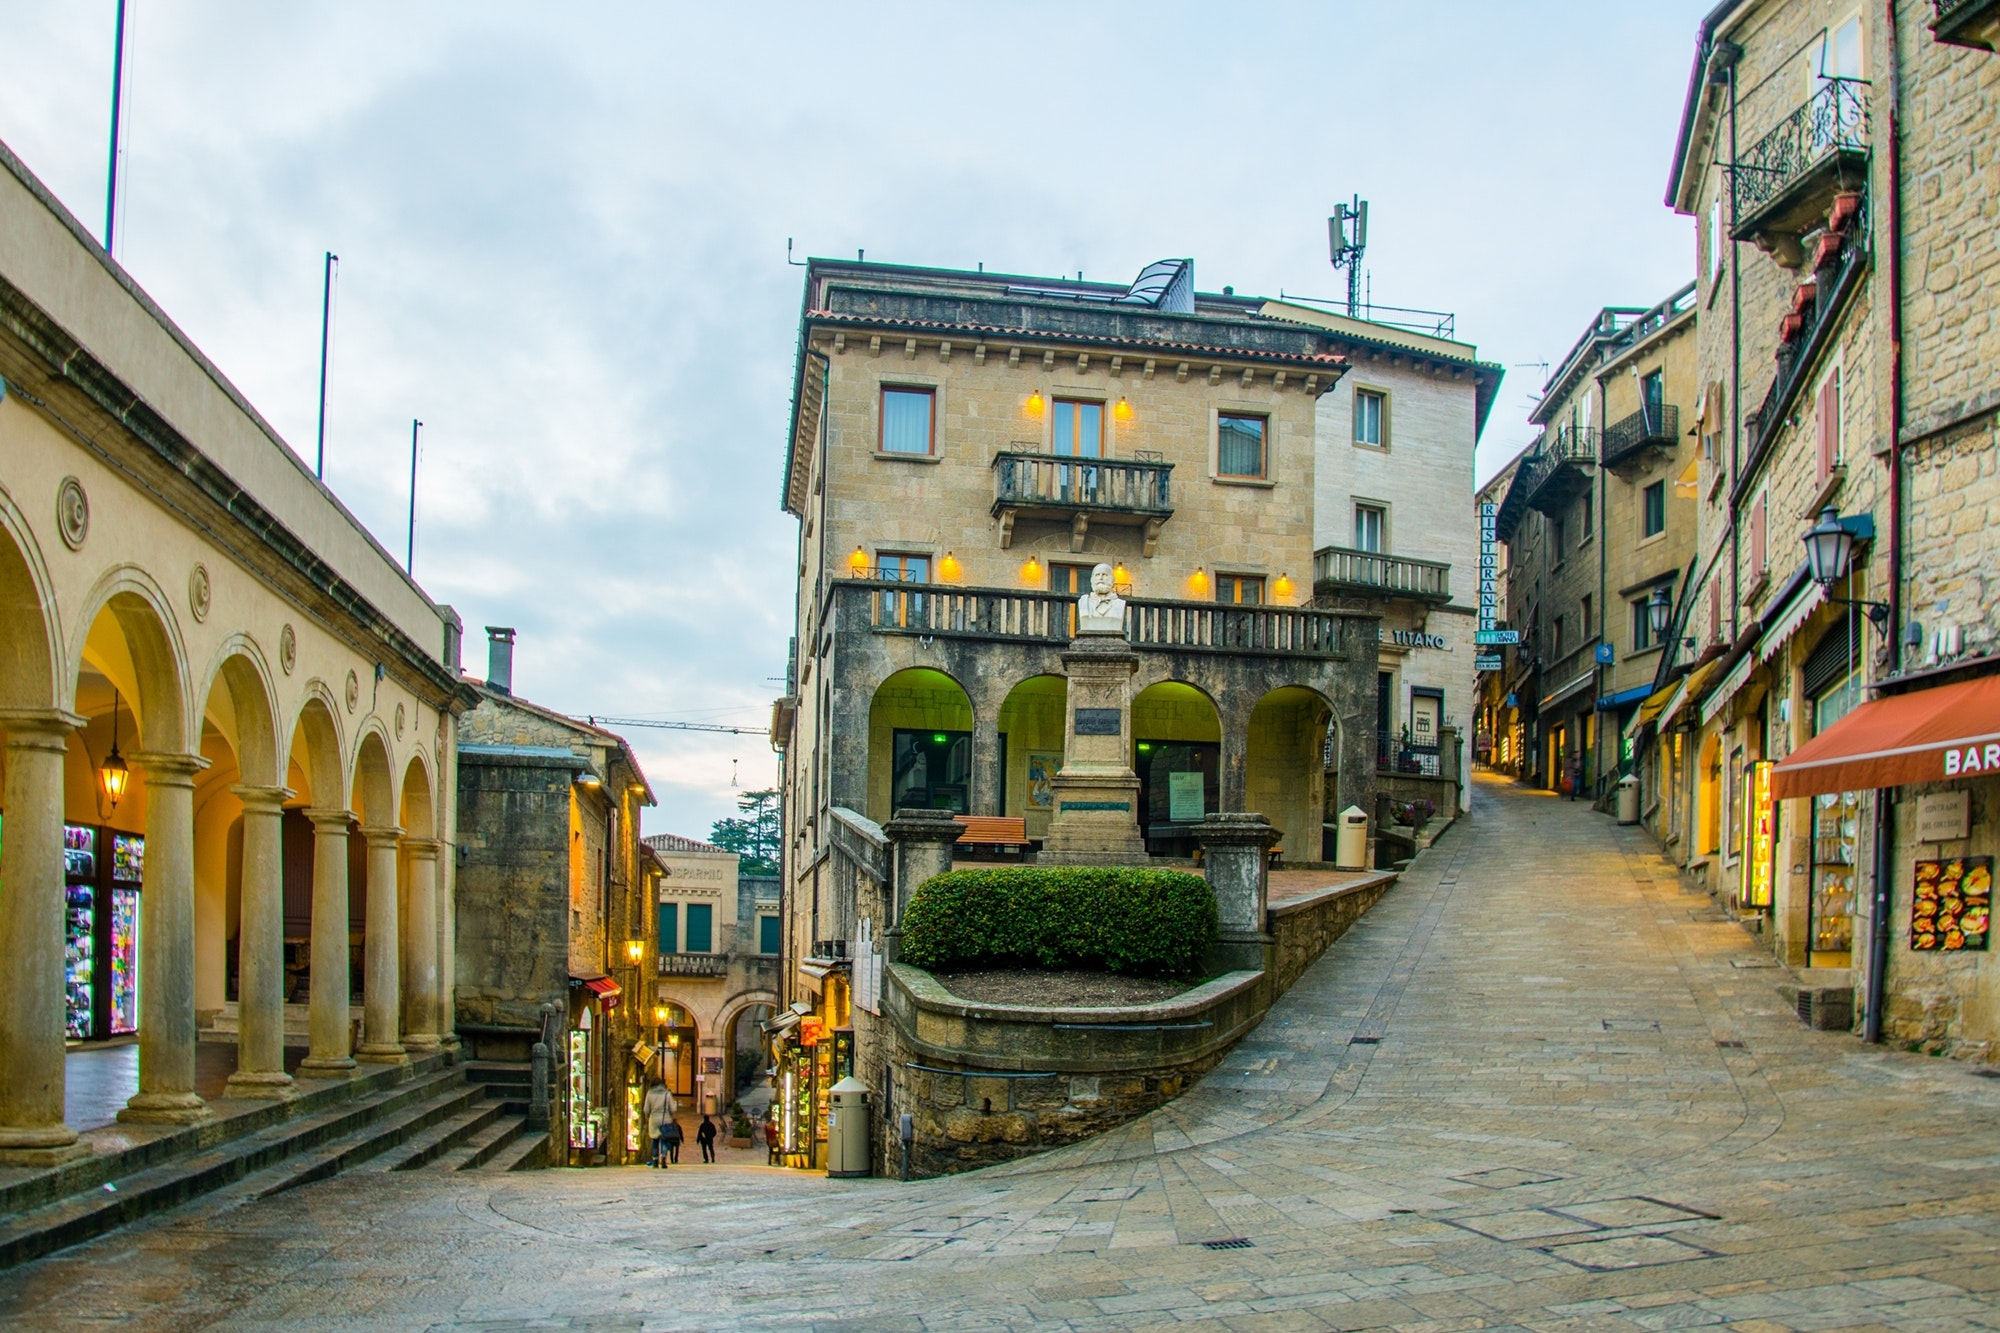 The streets of San Marino are built directly into Mount Titano.